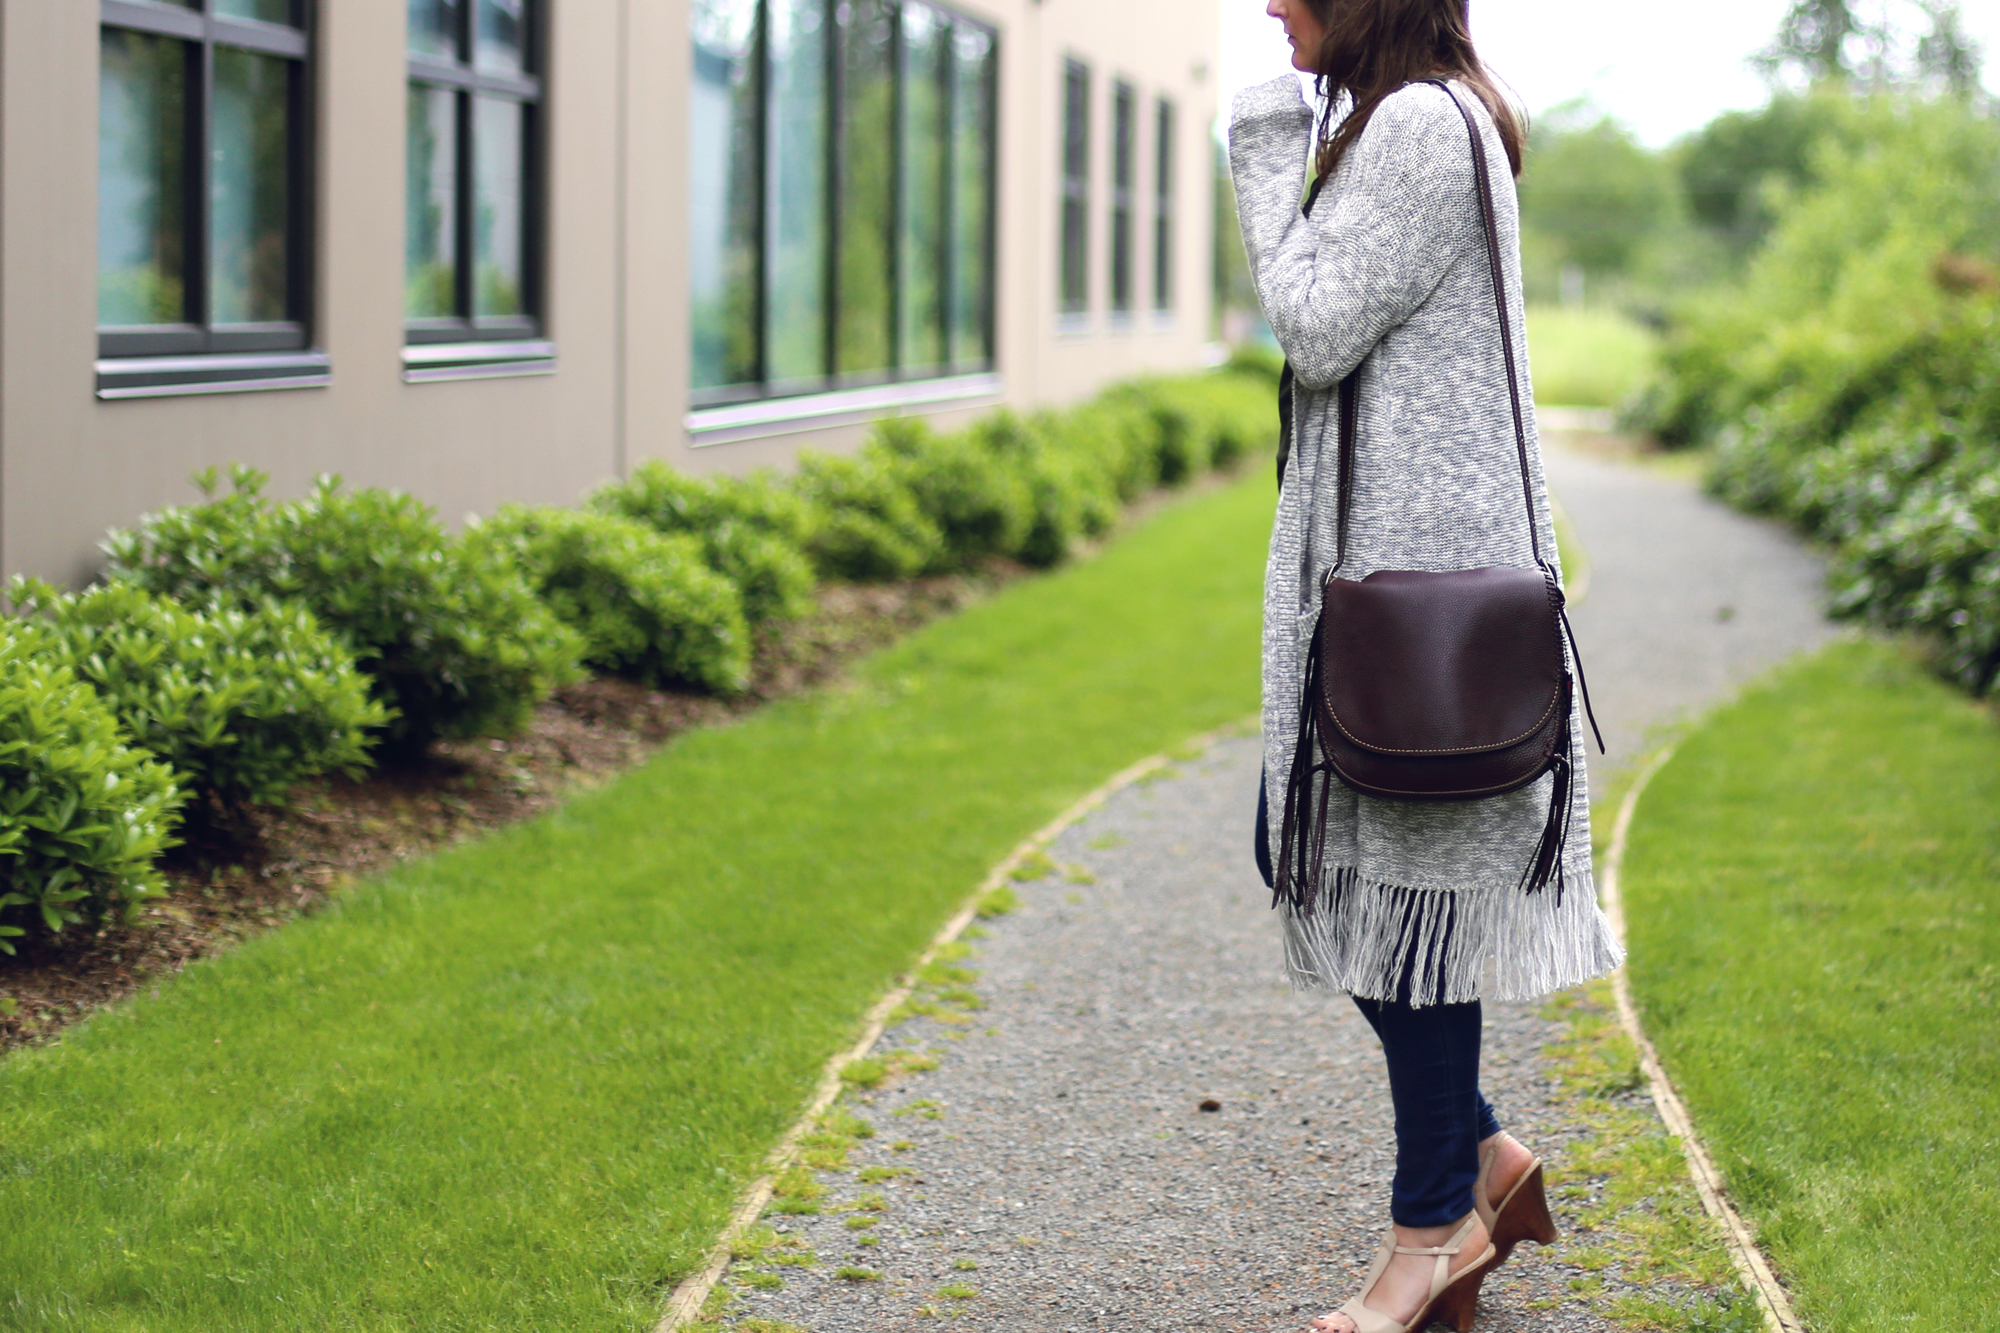 All tassel outfit: grey oversized tassel sweater and a leather tassel purse. #ootd